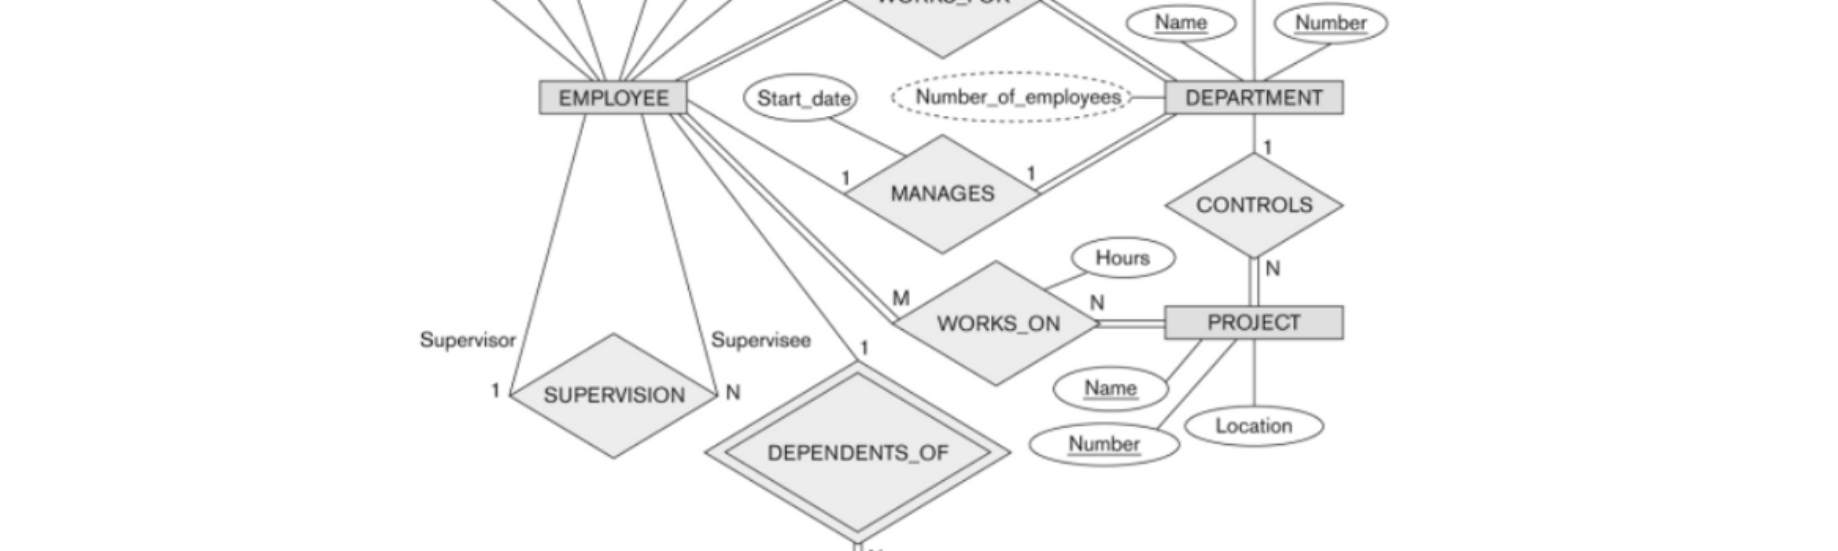 Database — Modeling : Entity Relationship Diagram (Erd) (Part 5) within Er Diagram Recursive Relationship